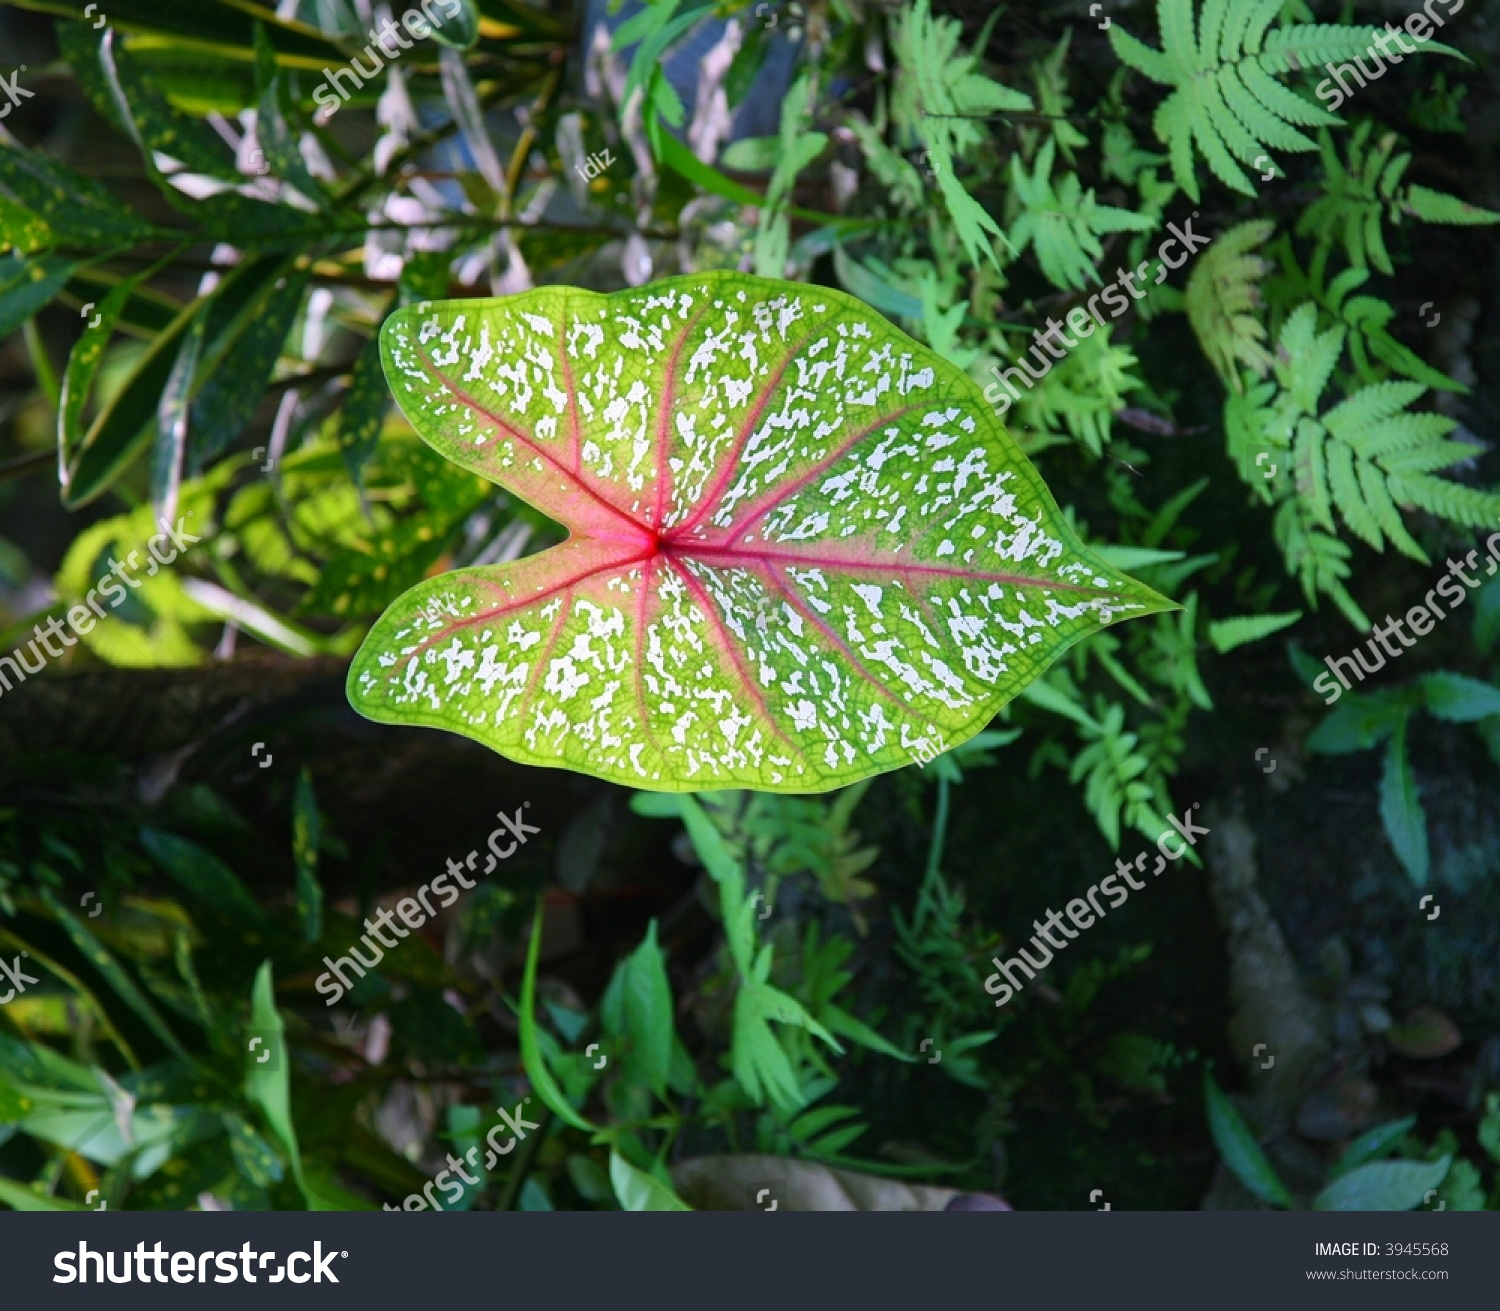 Rainy Fall Wallpaper Rainforest Plant Leaves Stock Photo 3945568 Shutterstock